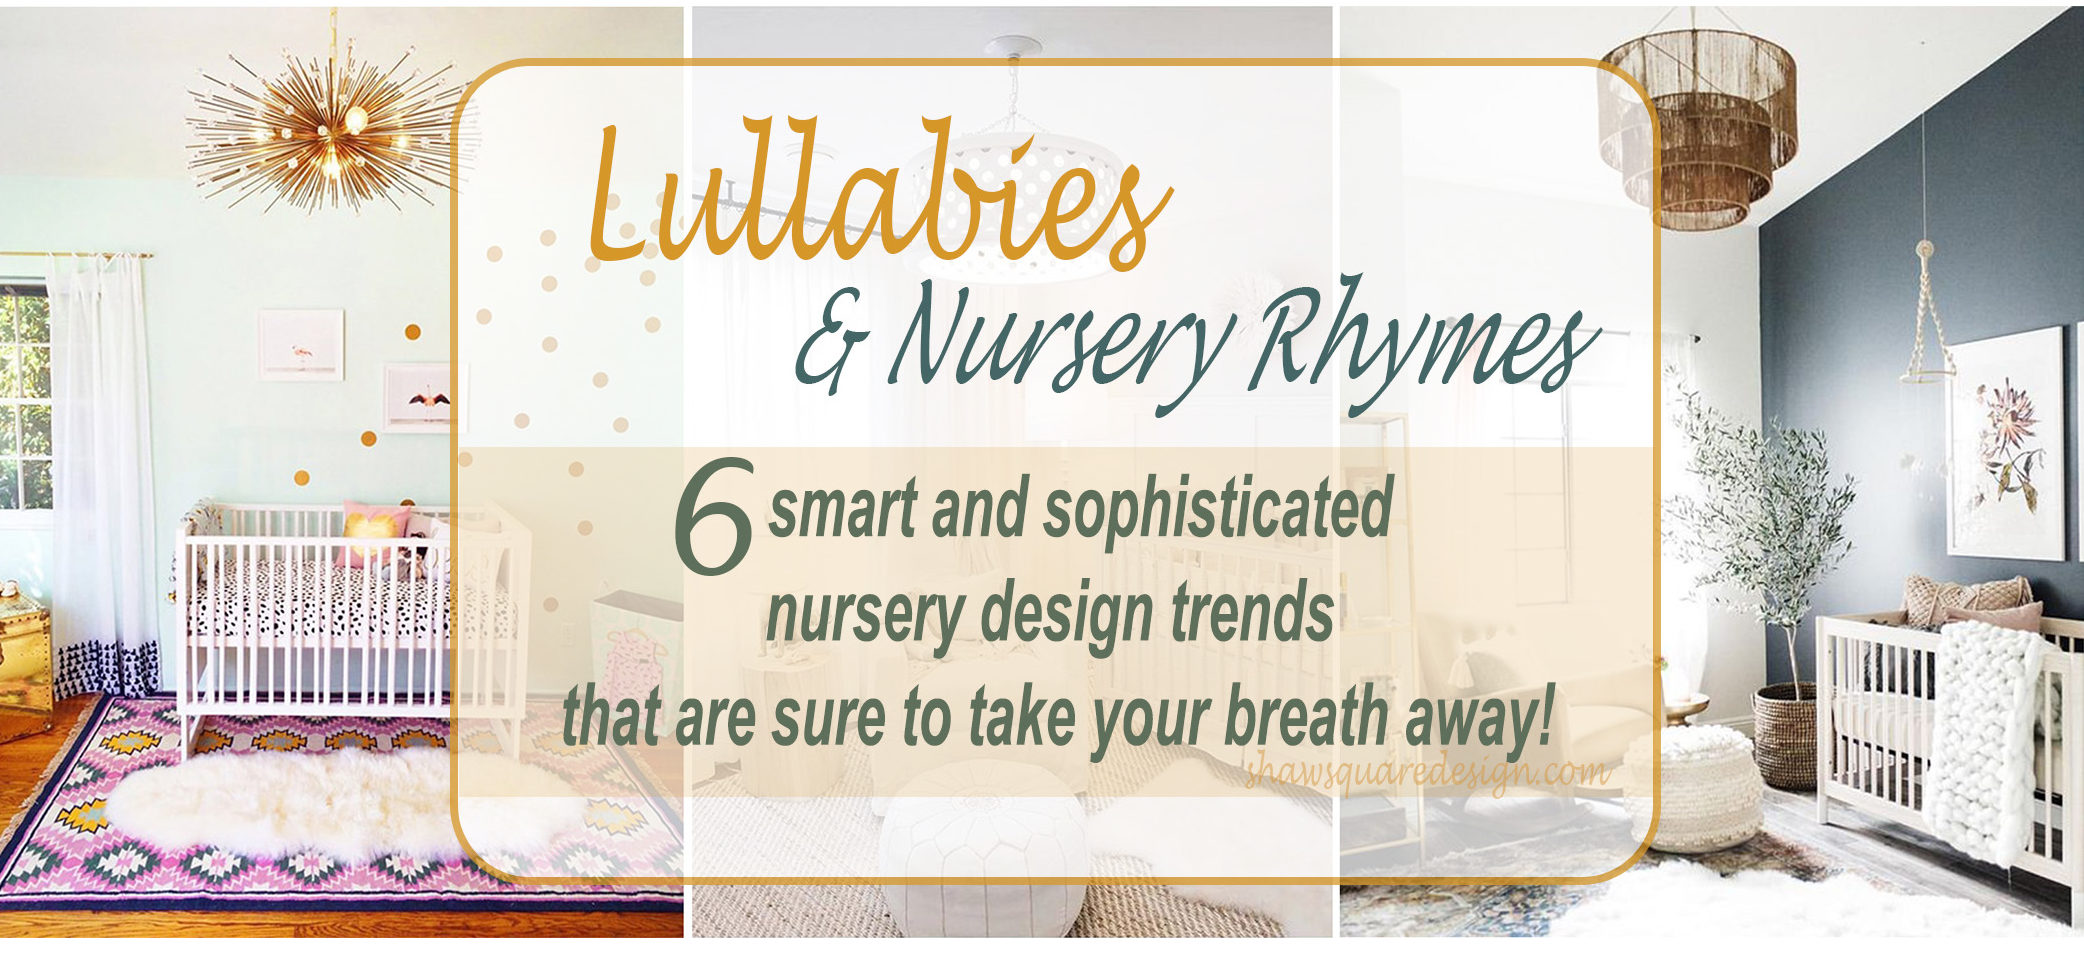 Nursery Design Trends Advice From Celebrity Designer: Lullabies And Nursery Rhymes: 6 Smartly Sophisticated